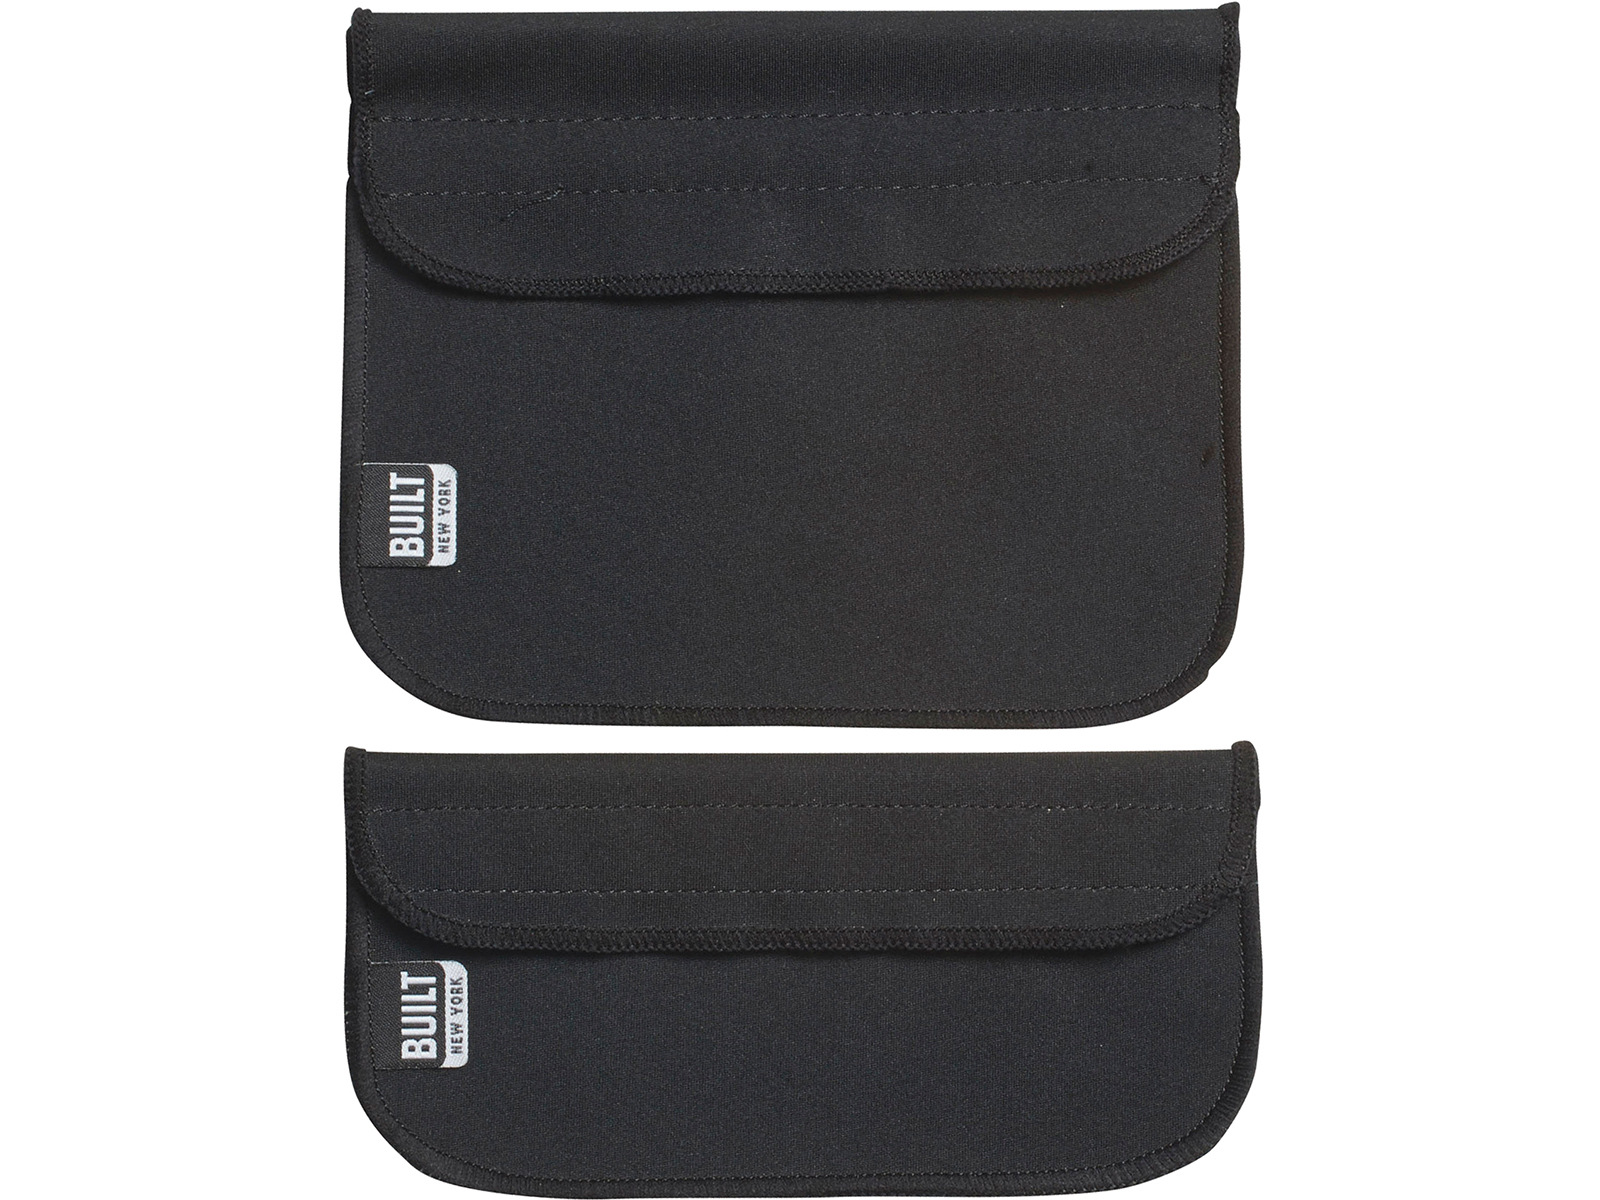 Built Sandwich And Snack Sleeves Black